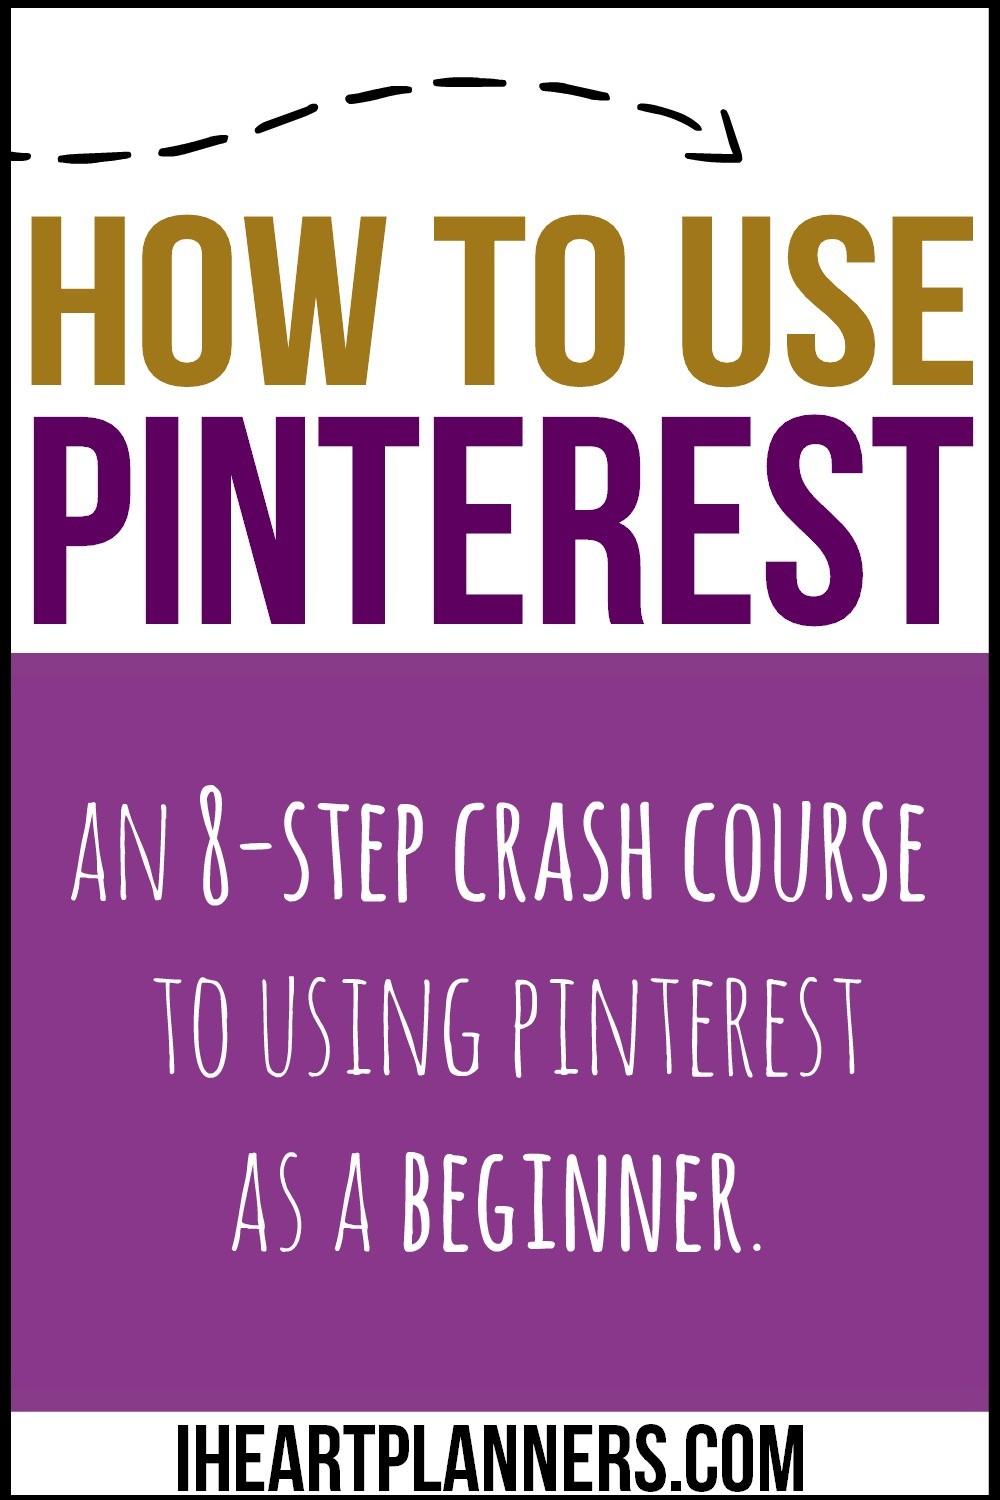 New to Pinterest? Here is a quick, 8-step crash course in everything Pinterest for beginners. This easy to follow guide includes a video to walk you through using Pinterest. A must for any newbie!